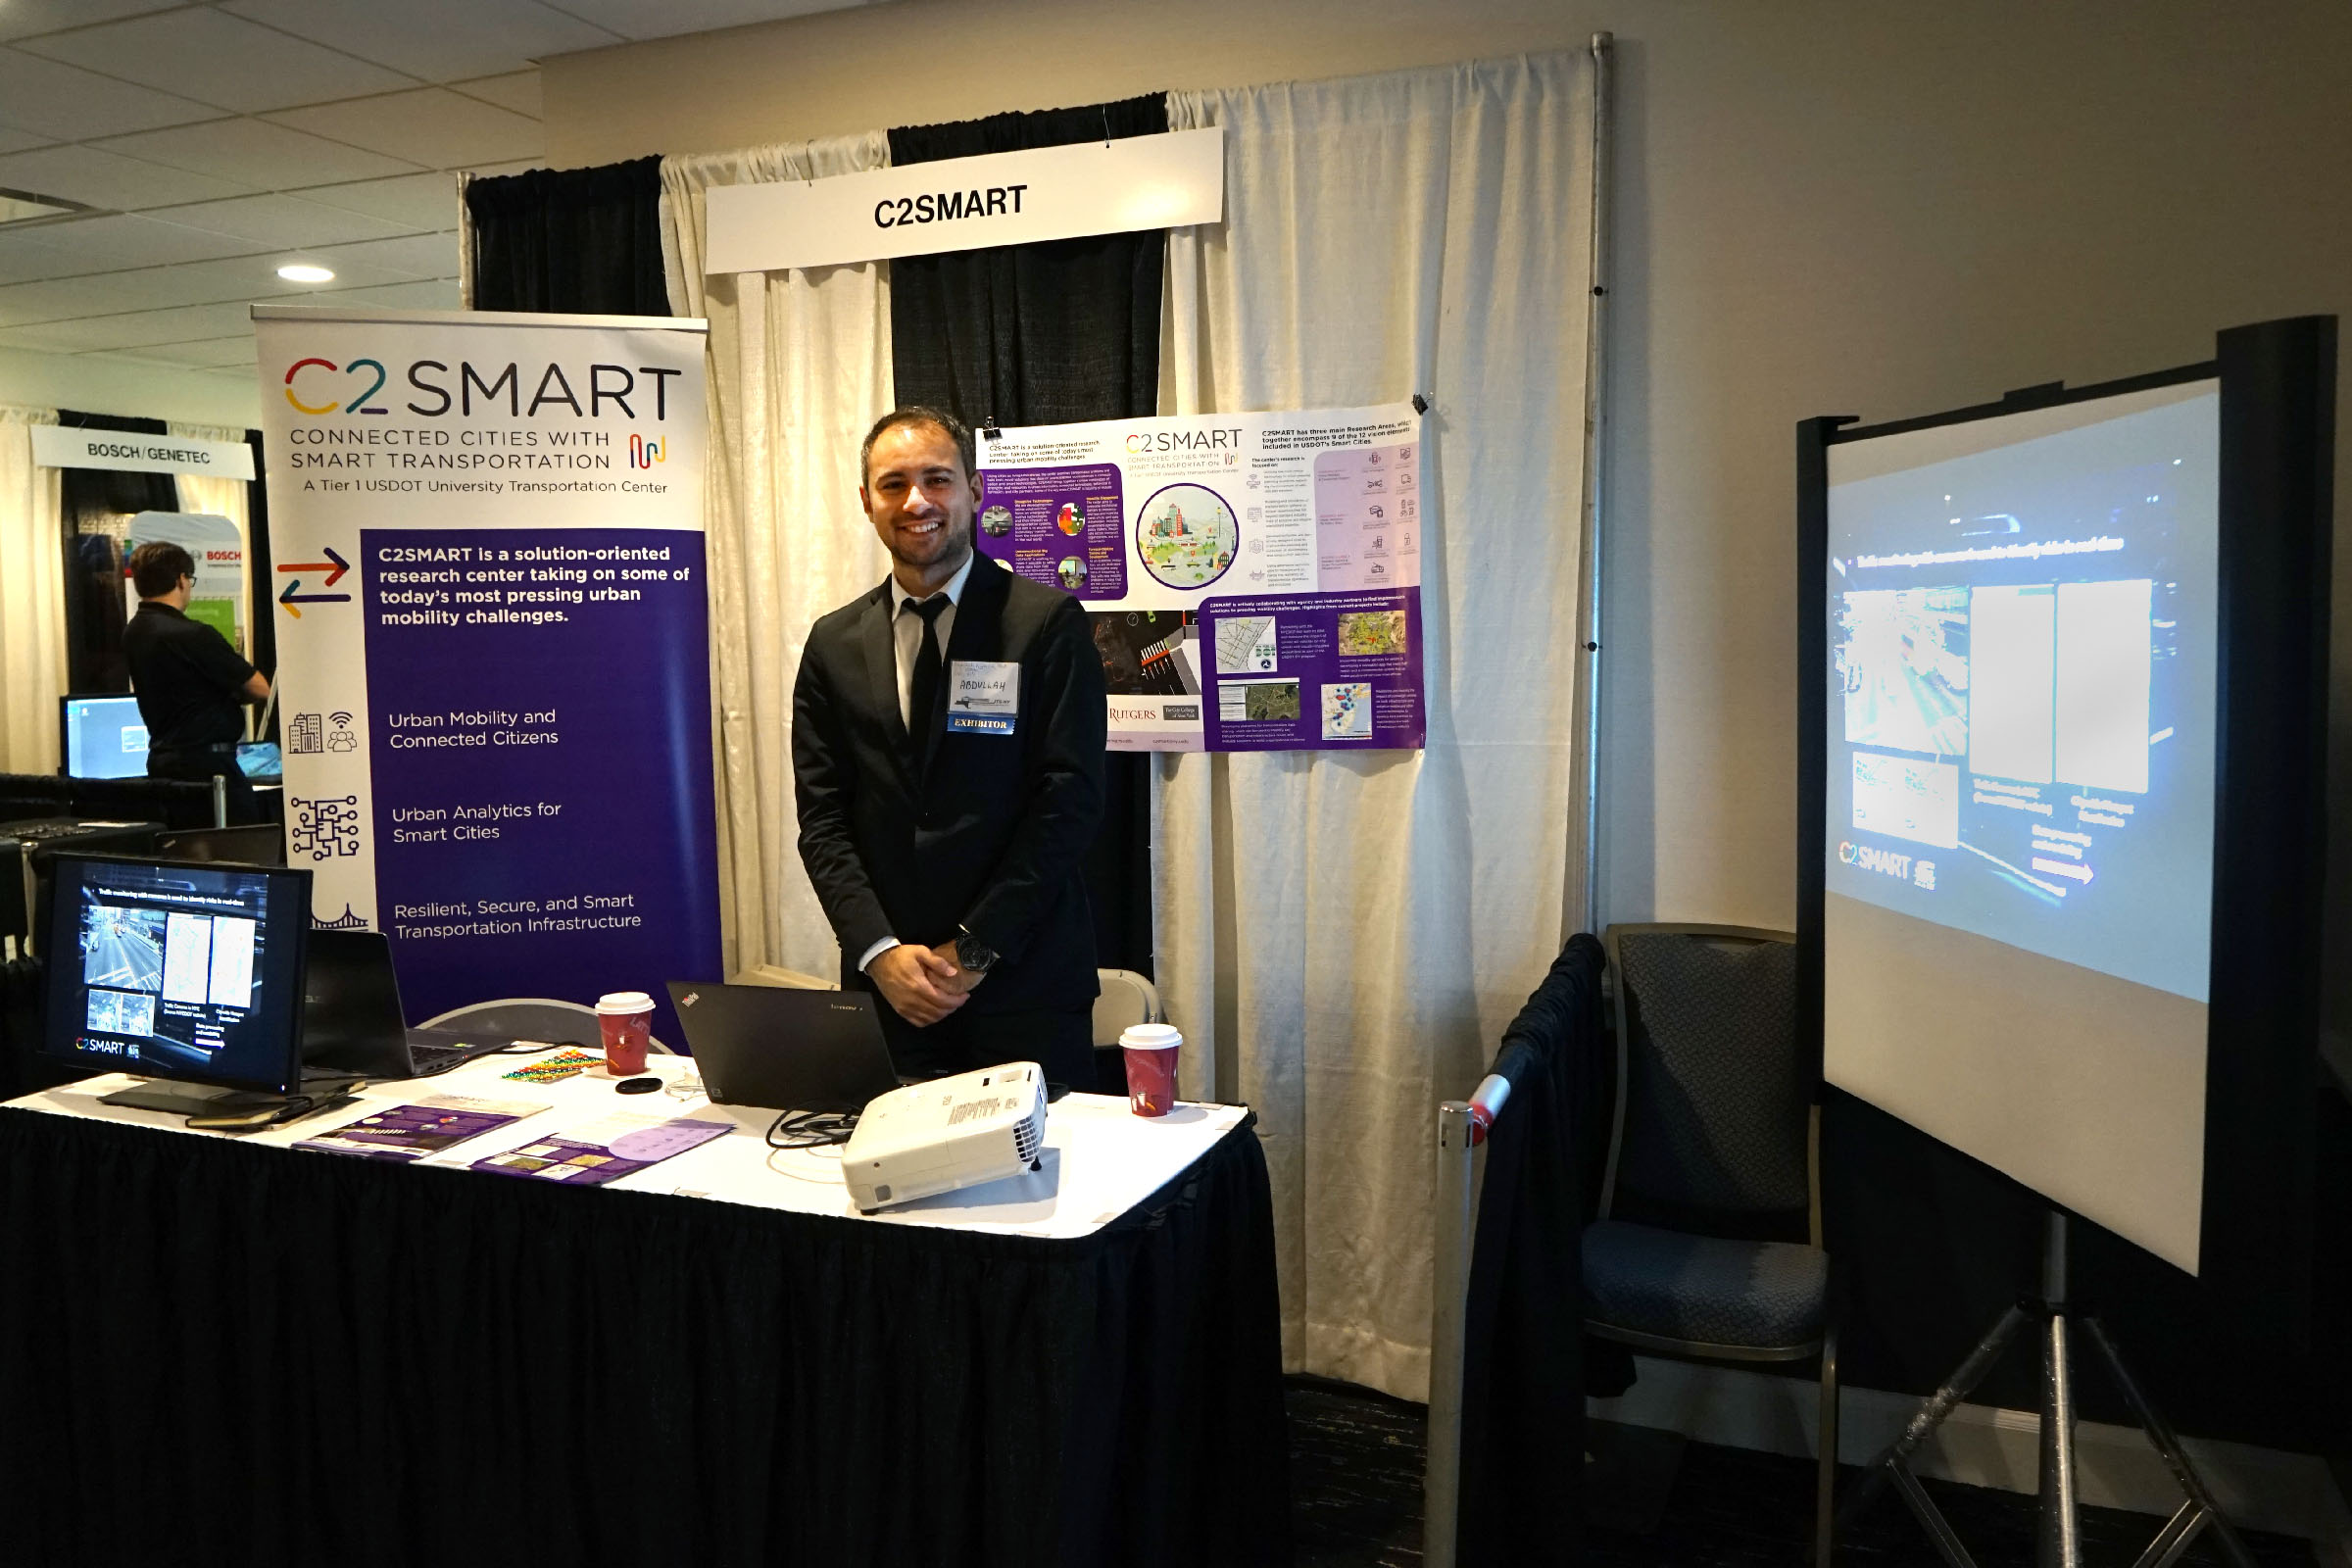 C2SMART booth at ITS NY